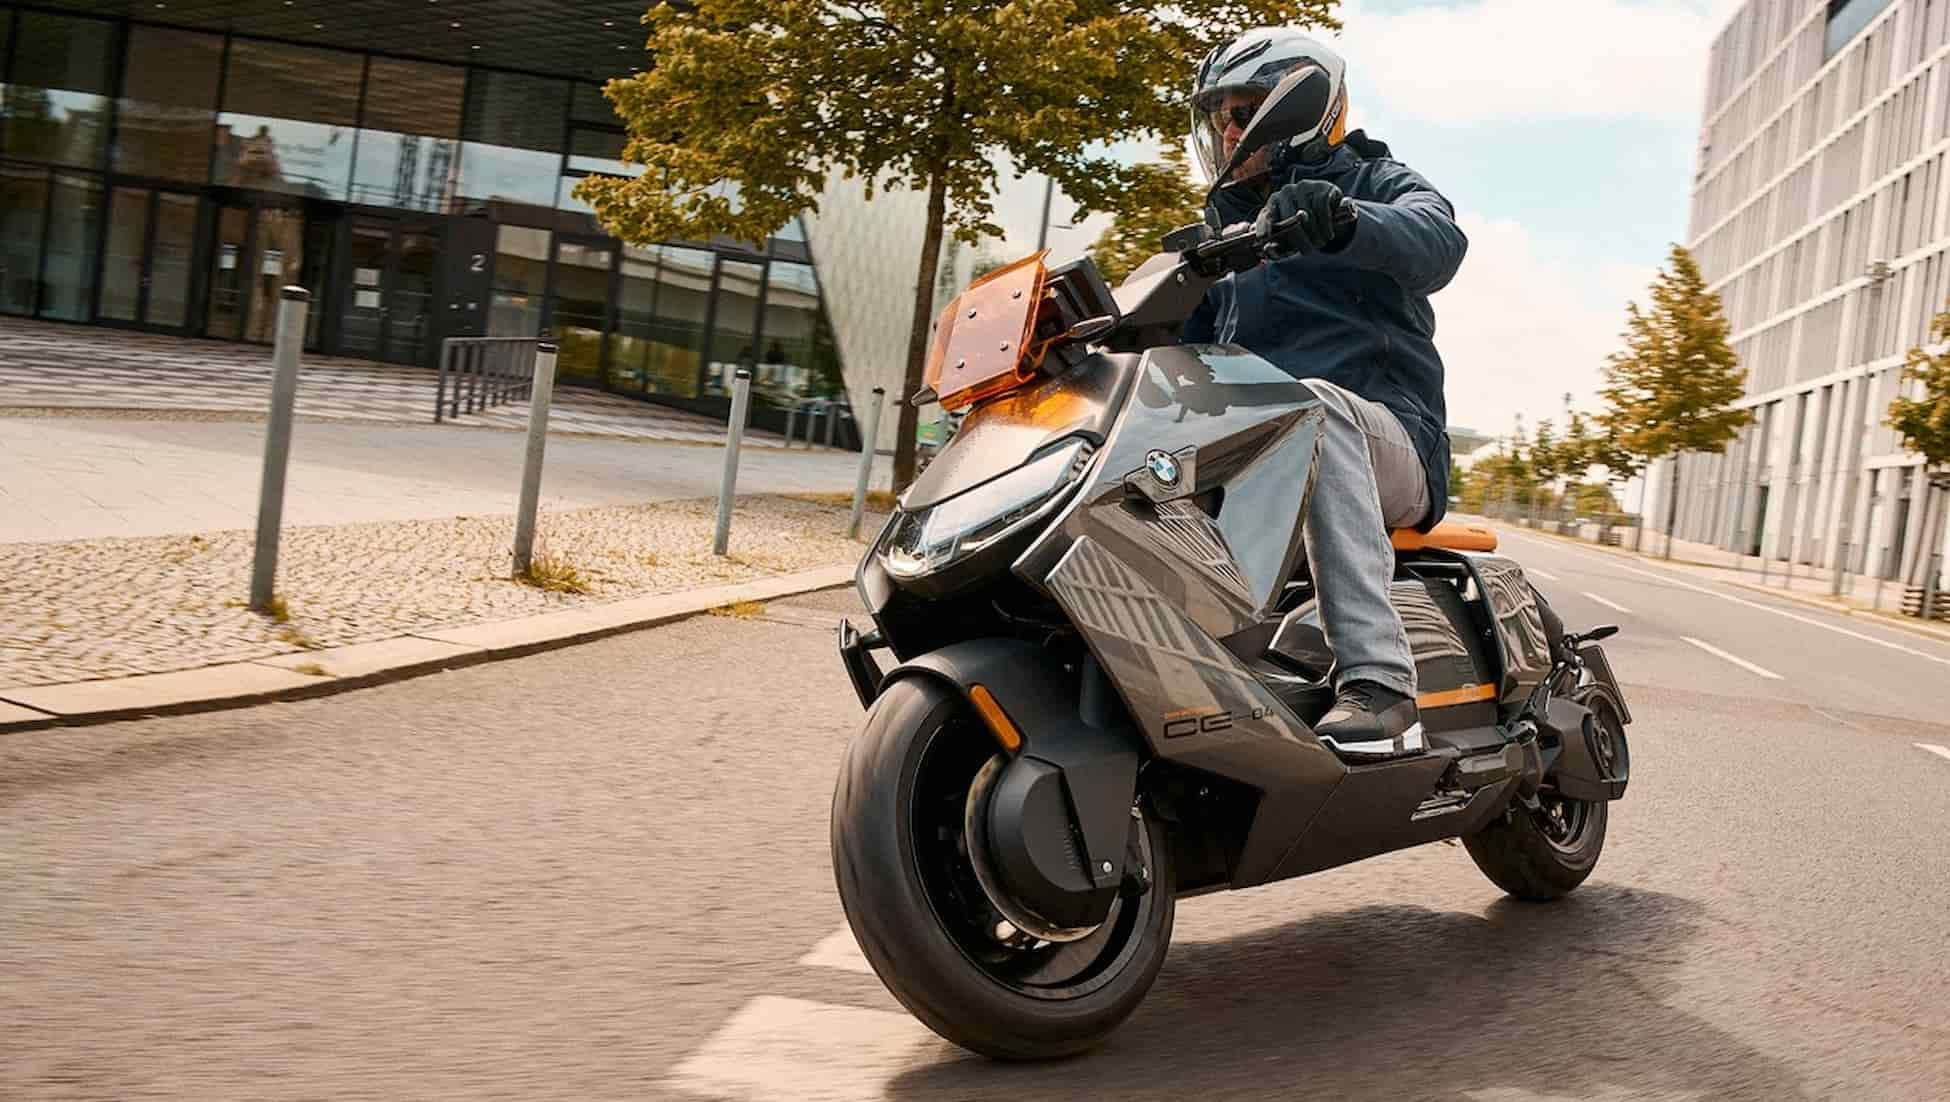 Strong and stylish BMW CE 04 E scooter with surprising